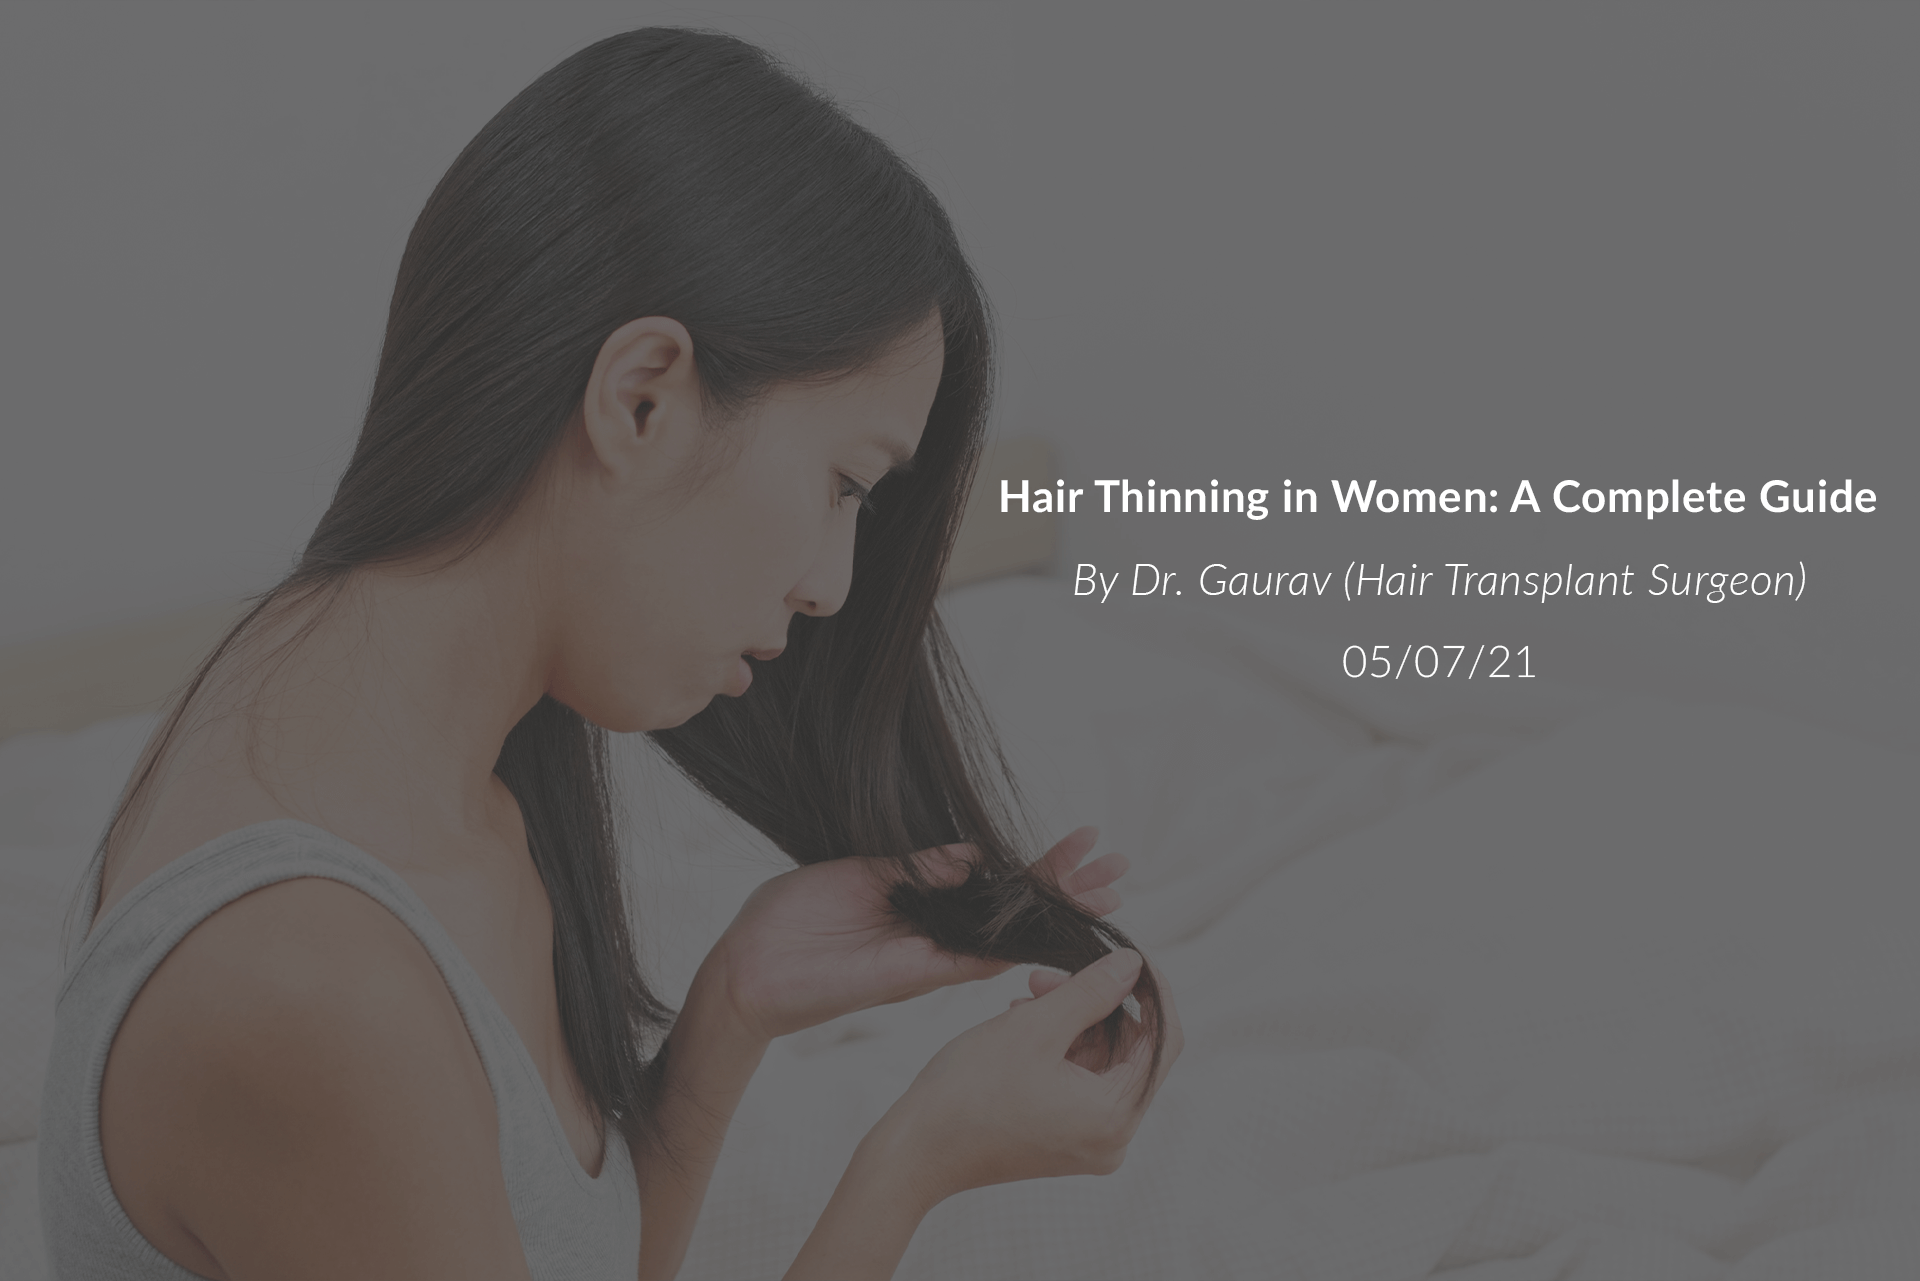 Hair Thinning In Women: A Complete Guide